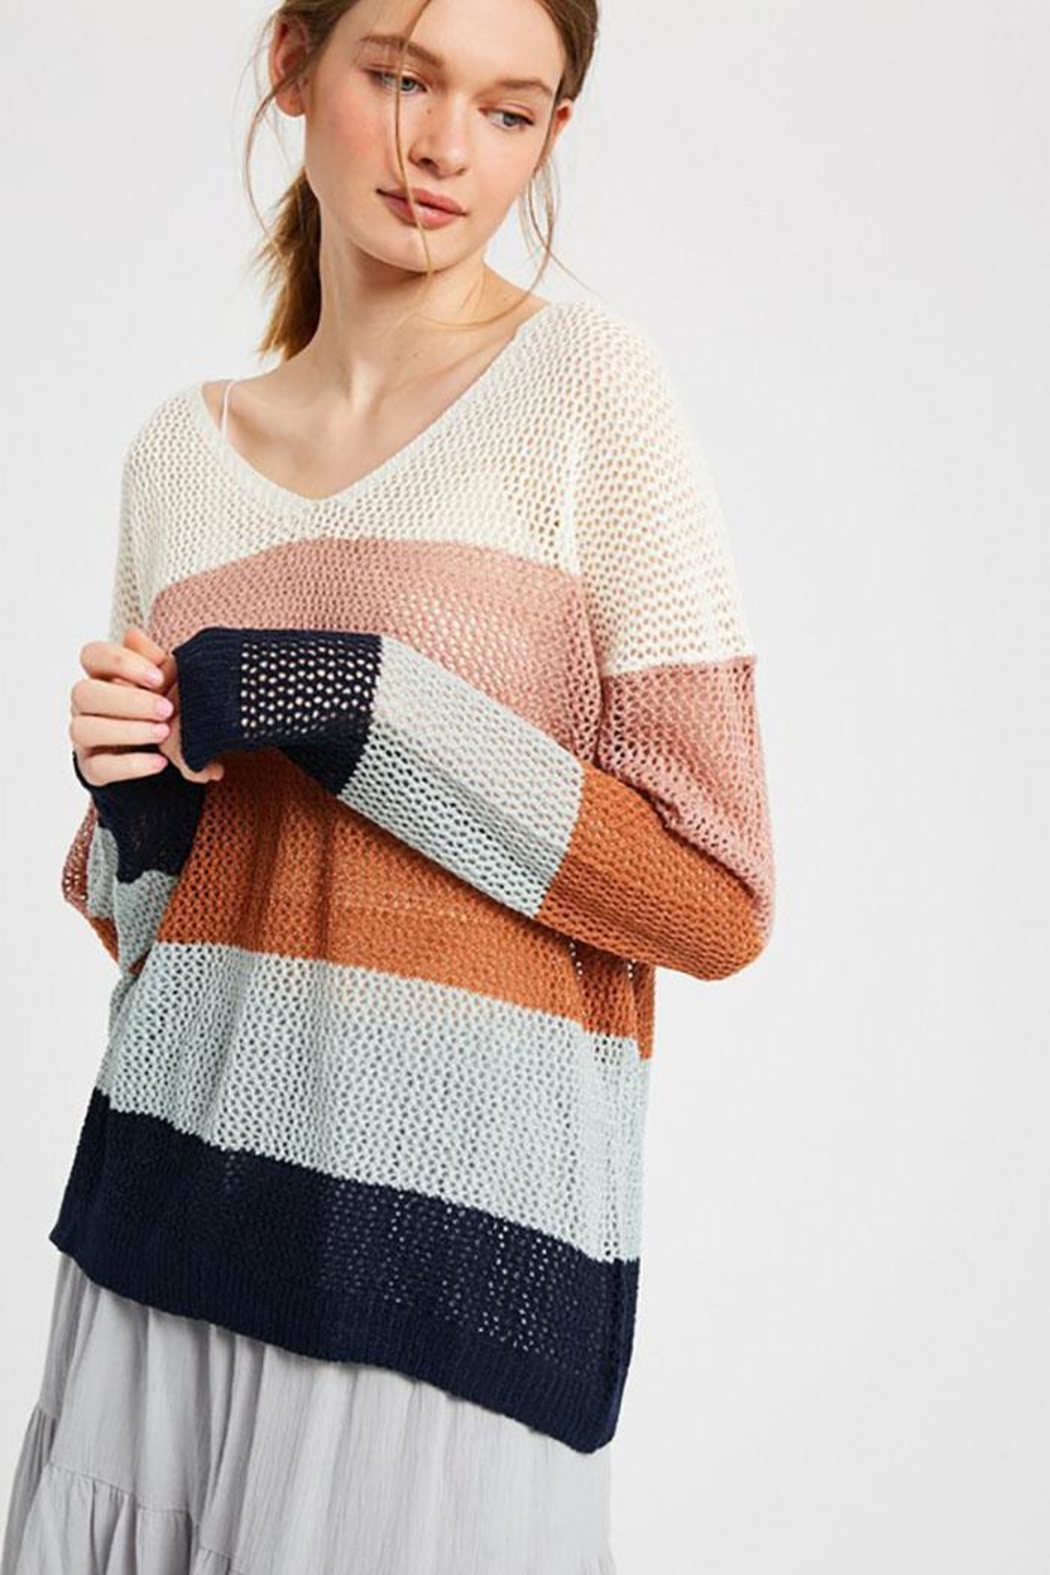 Wishlist Colorblock Loose Fit V Neck Lightweight Knit Sweater Pullover Top - Front Cropped Image